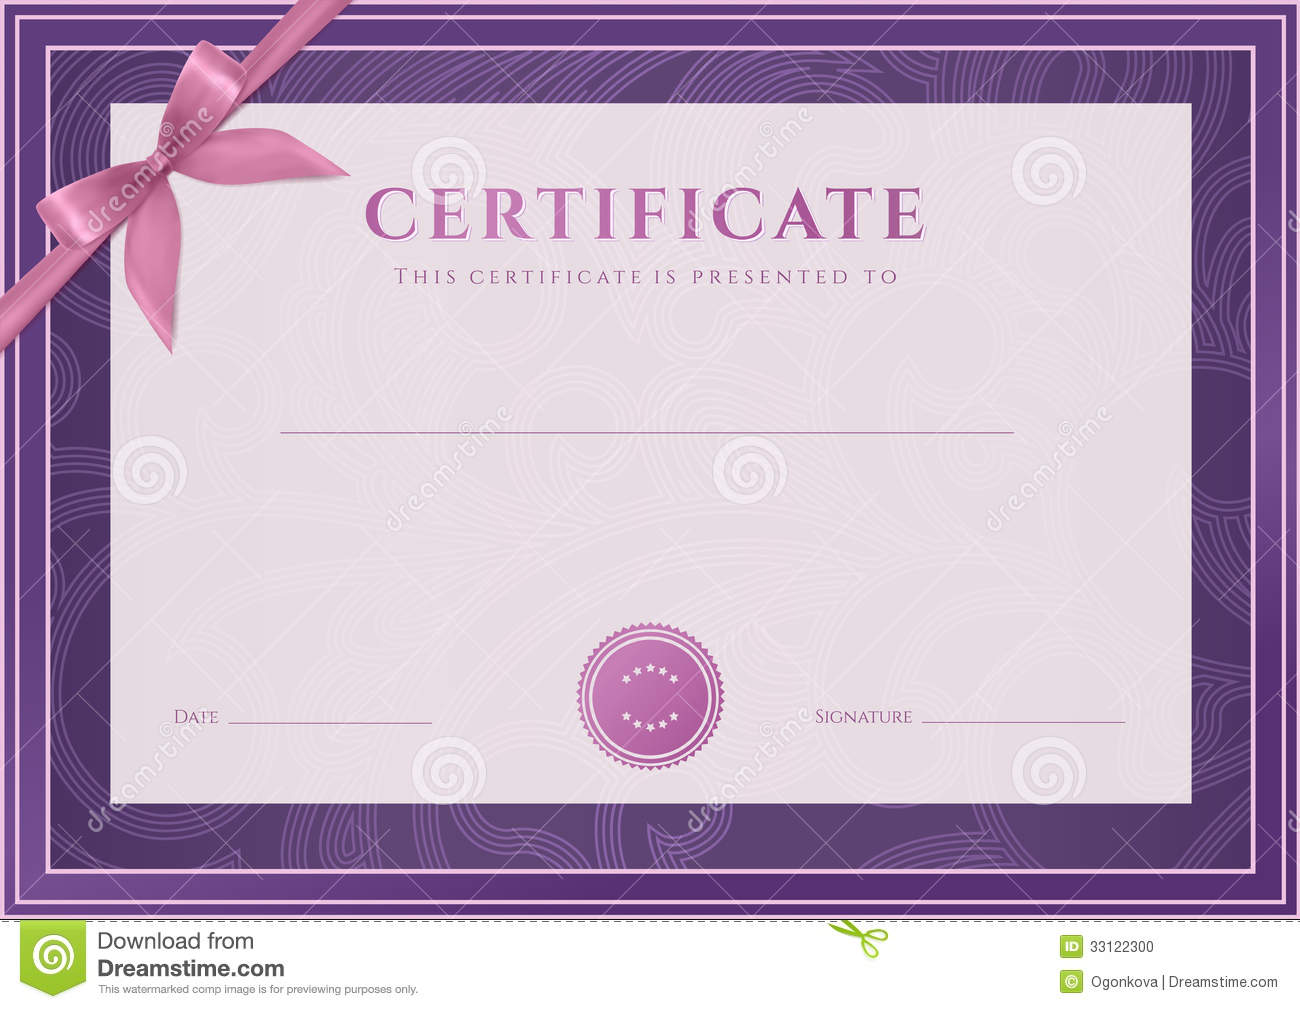 Award certificate template no border choice image certificate award certificate template no border images certificate design award certificate template no border images certificate design yelopaper Images